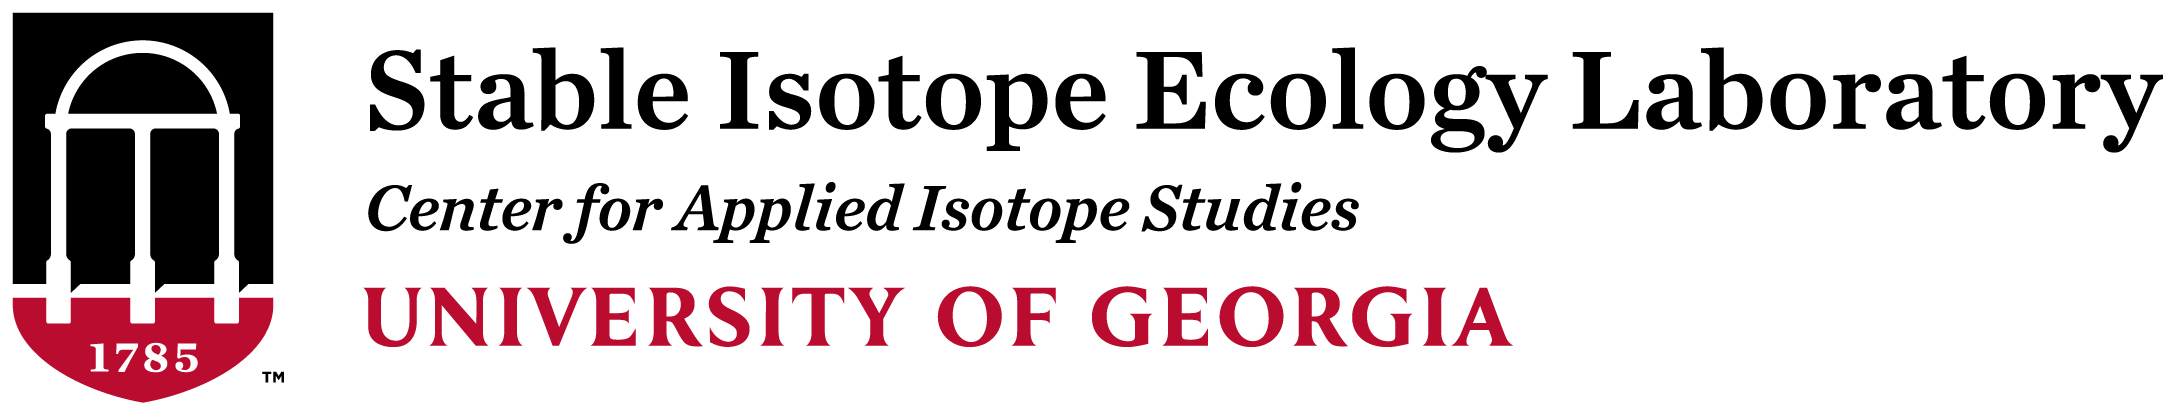 Stable Isotope Ecology Laboratory